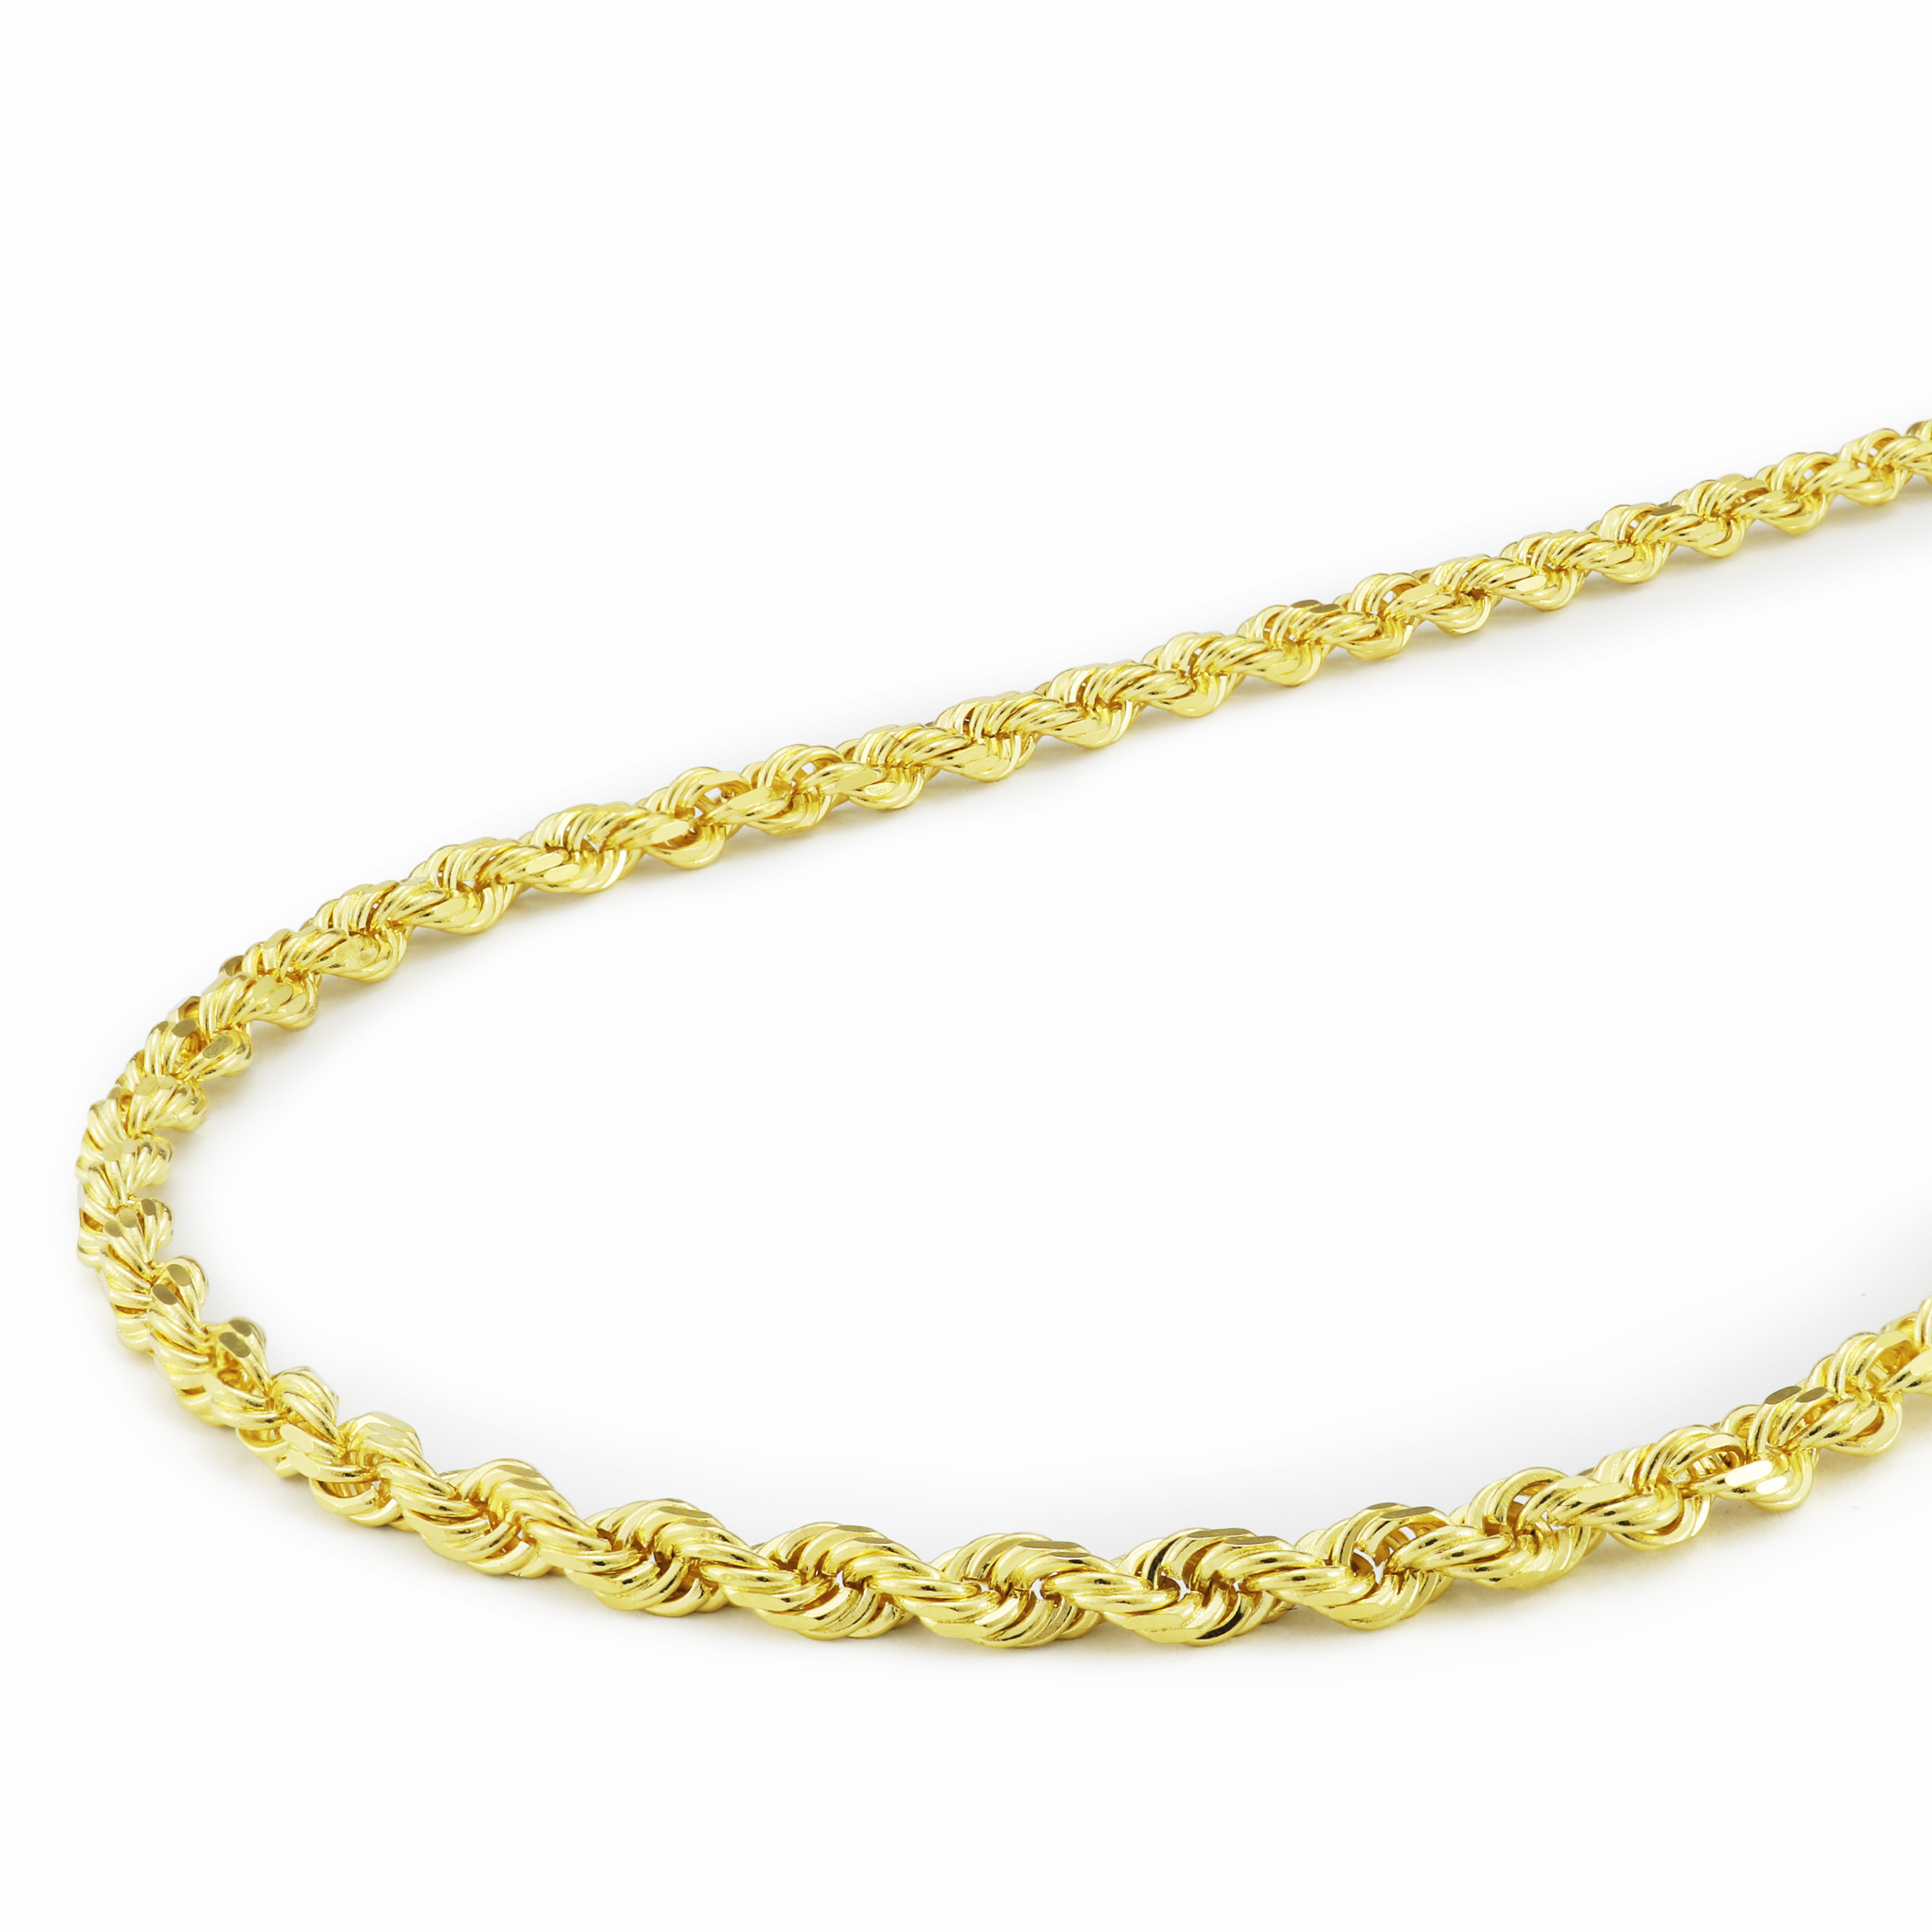 Real-14K-Yellow-Gold-3mm-Diamond-Cut-Rope-Chain-Necklace-Lobster-Clasp-18-034-30-034 thumbnail 24